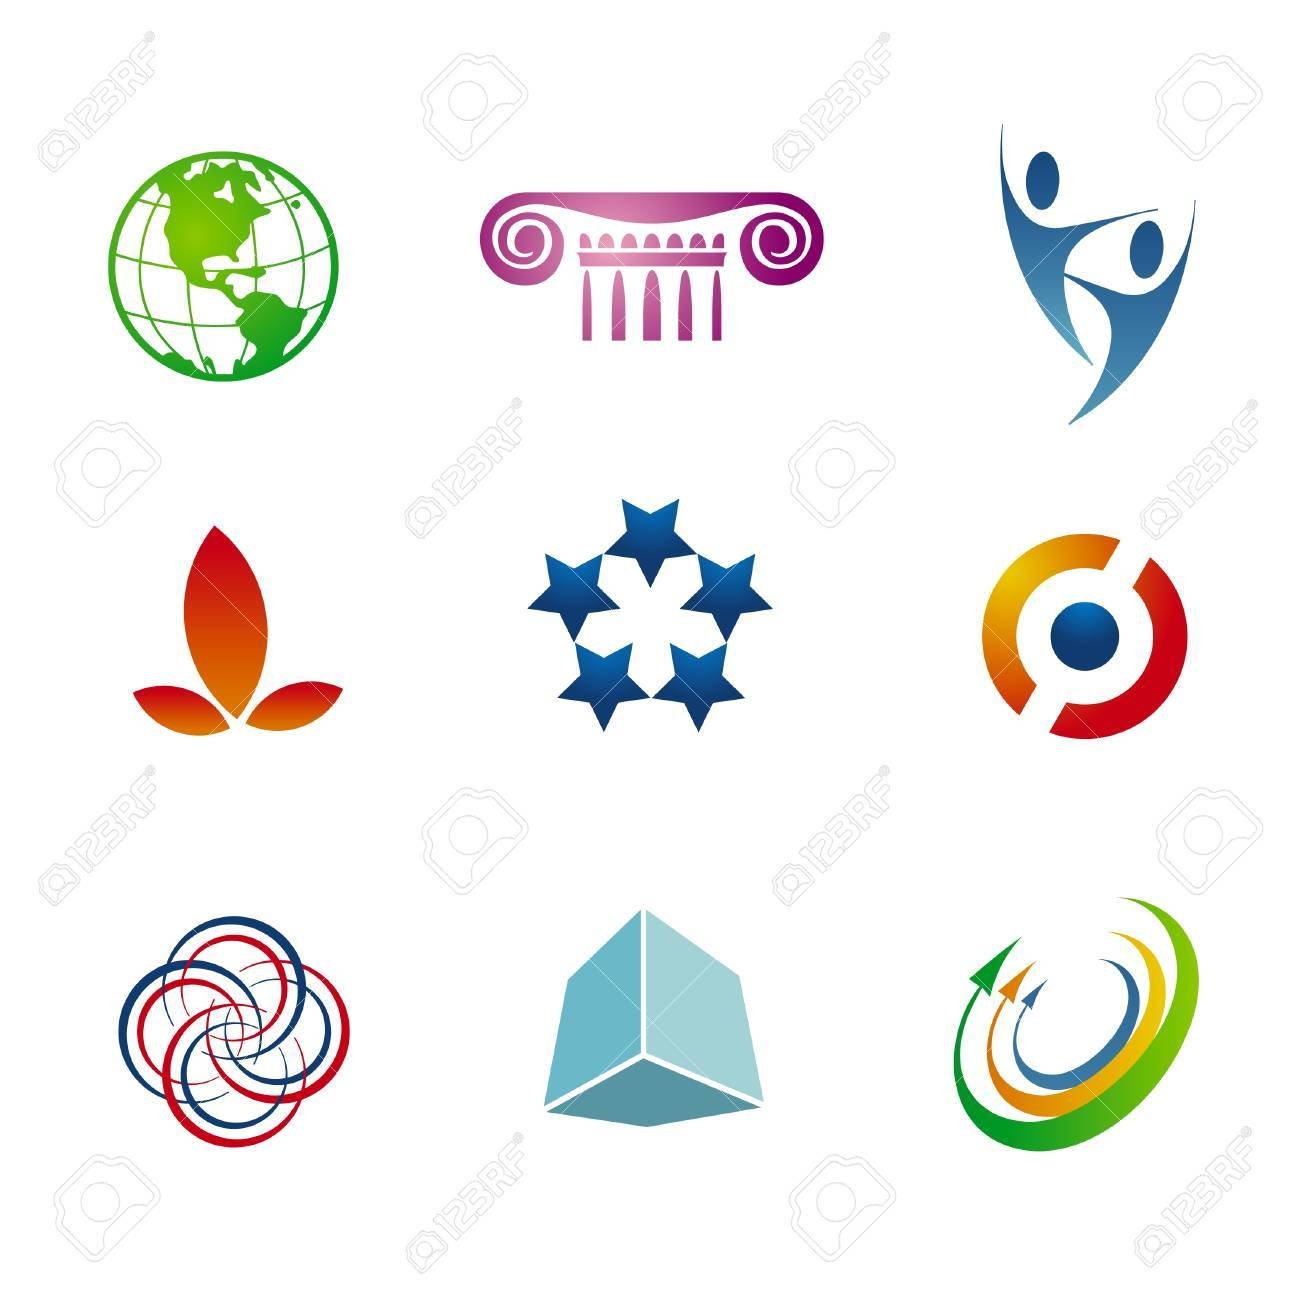 Set of corporate vector branding / logo templates. Just place your own brand name. Stock Vector - 4092673